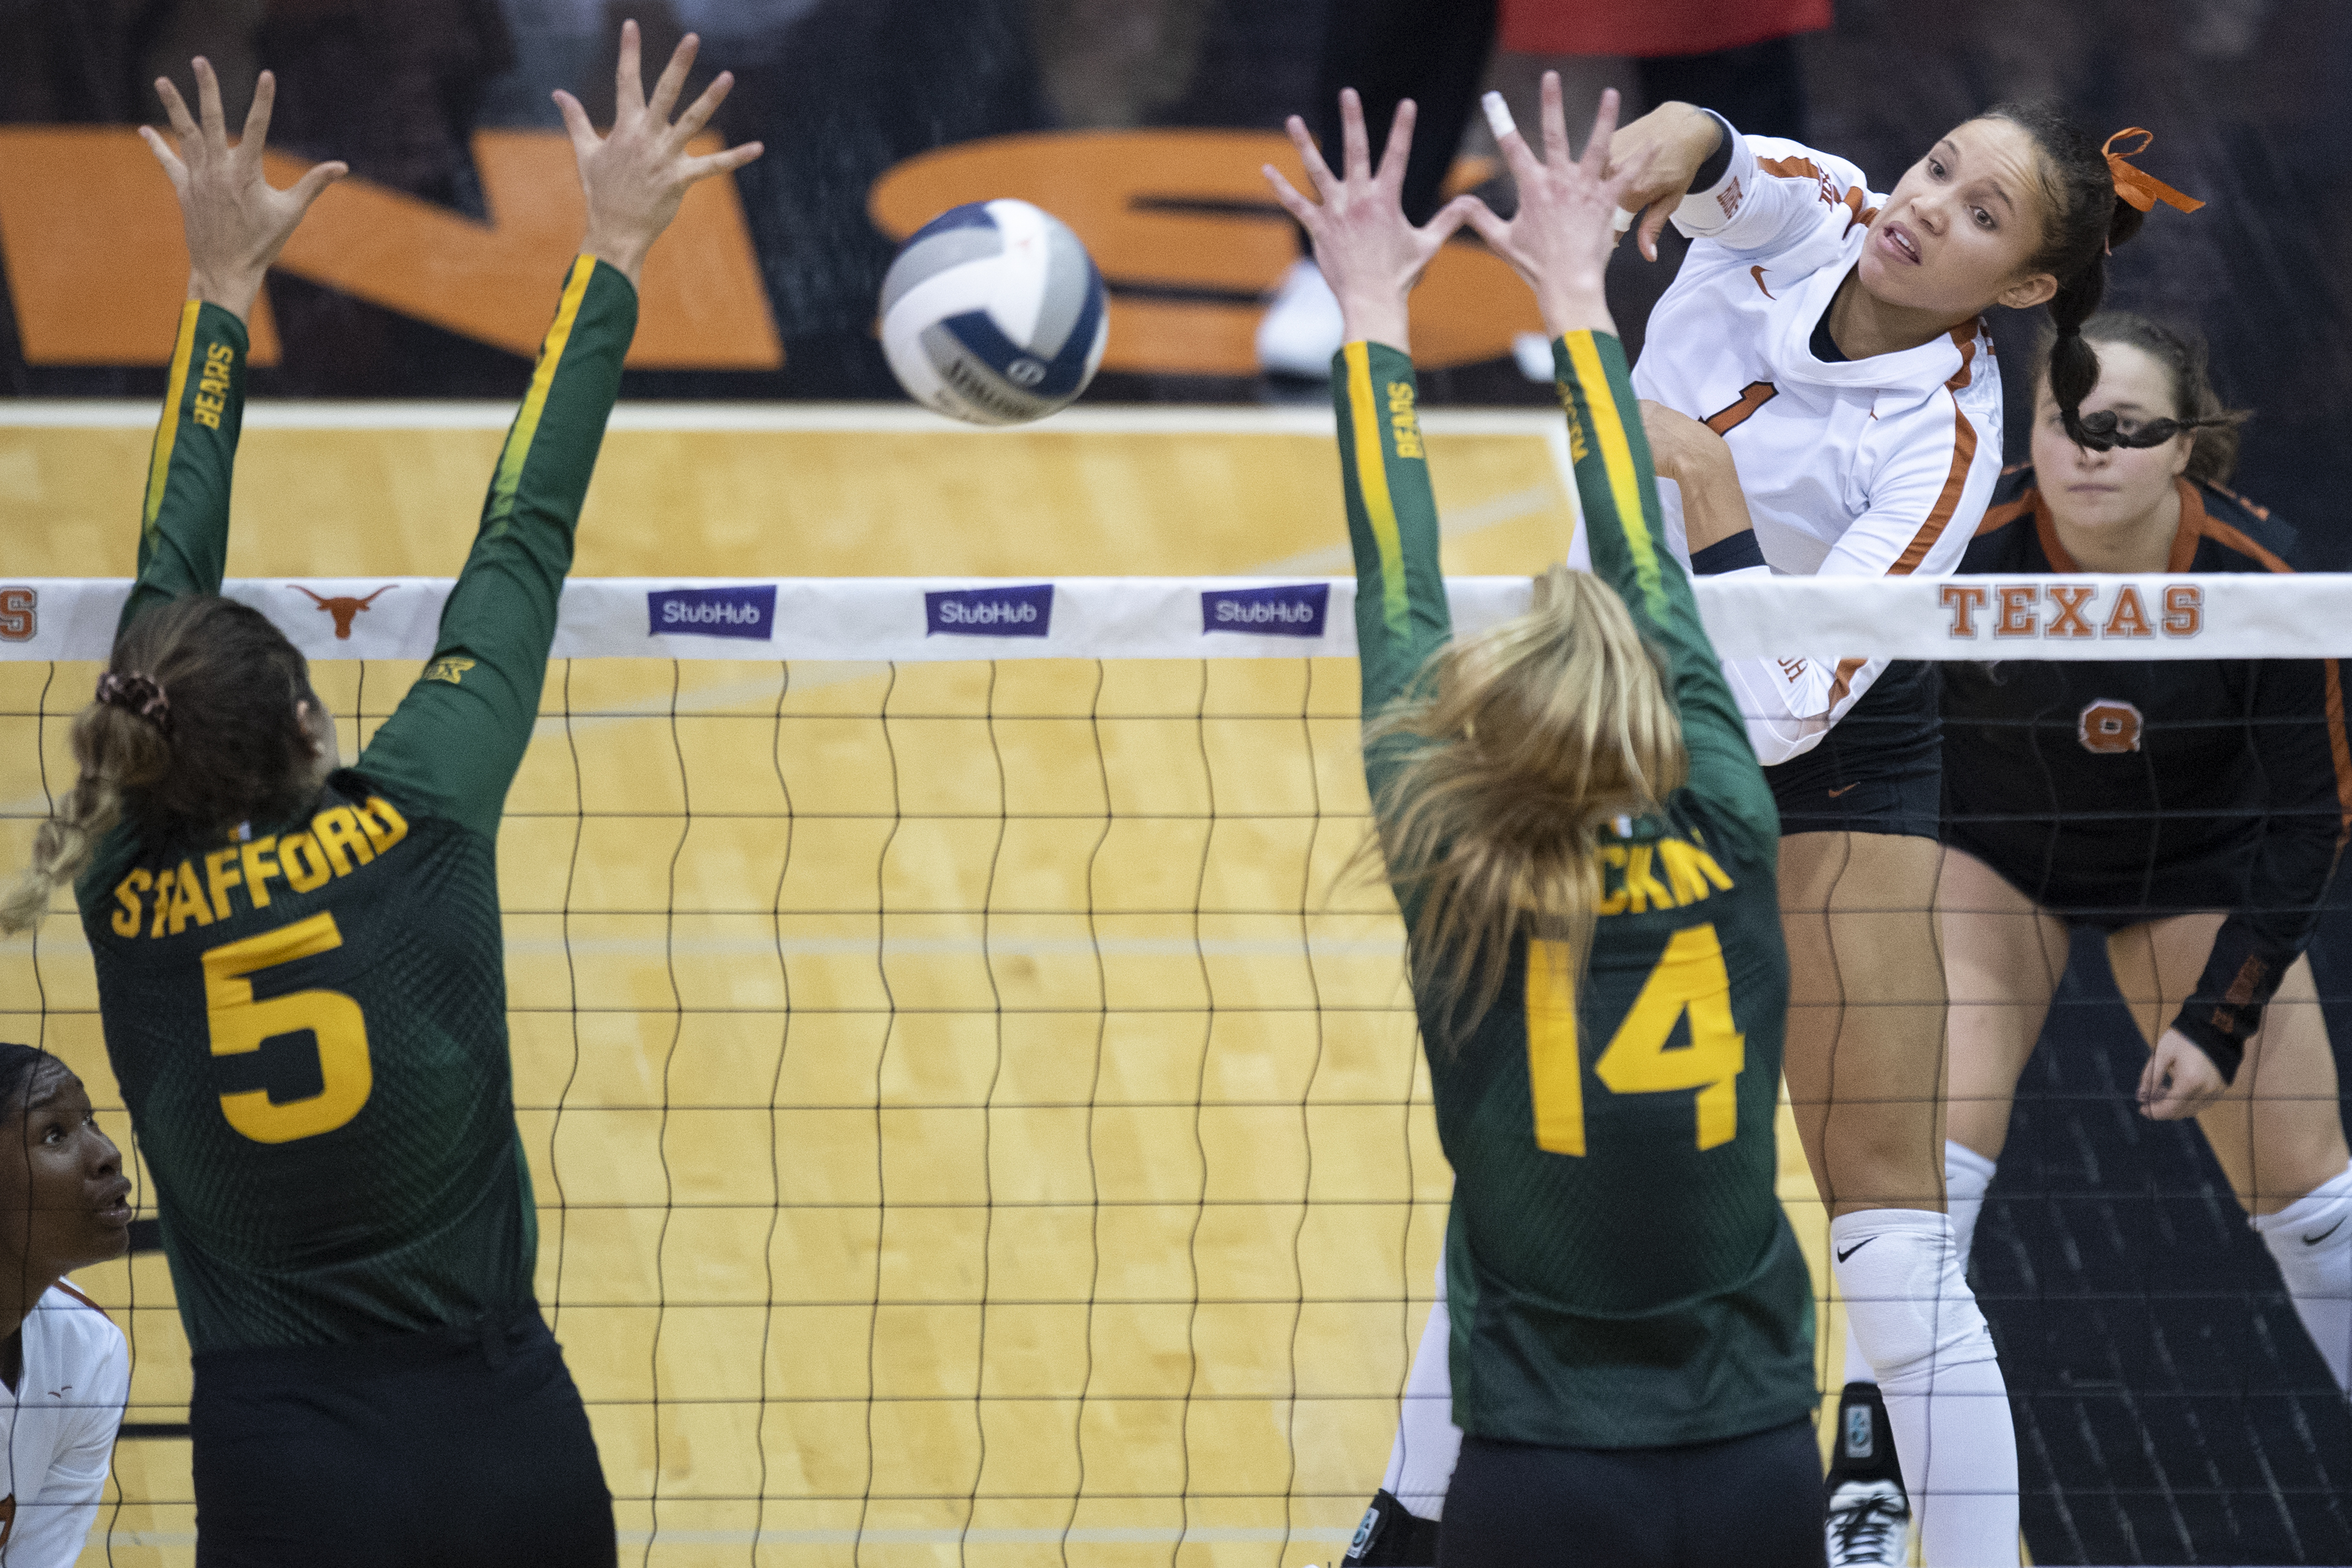 No 4 Volleyball S Micaya White Named Finalist For Senior Class Award University Of Texas Athletics